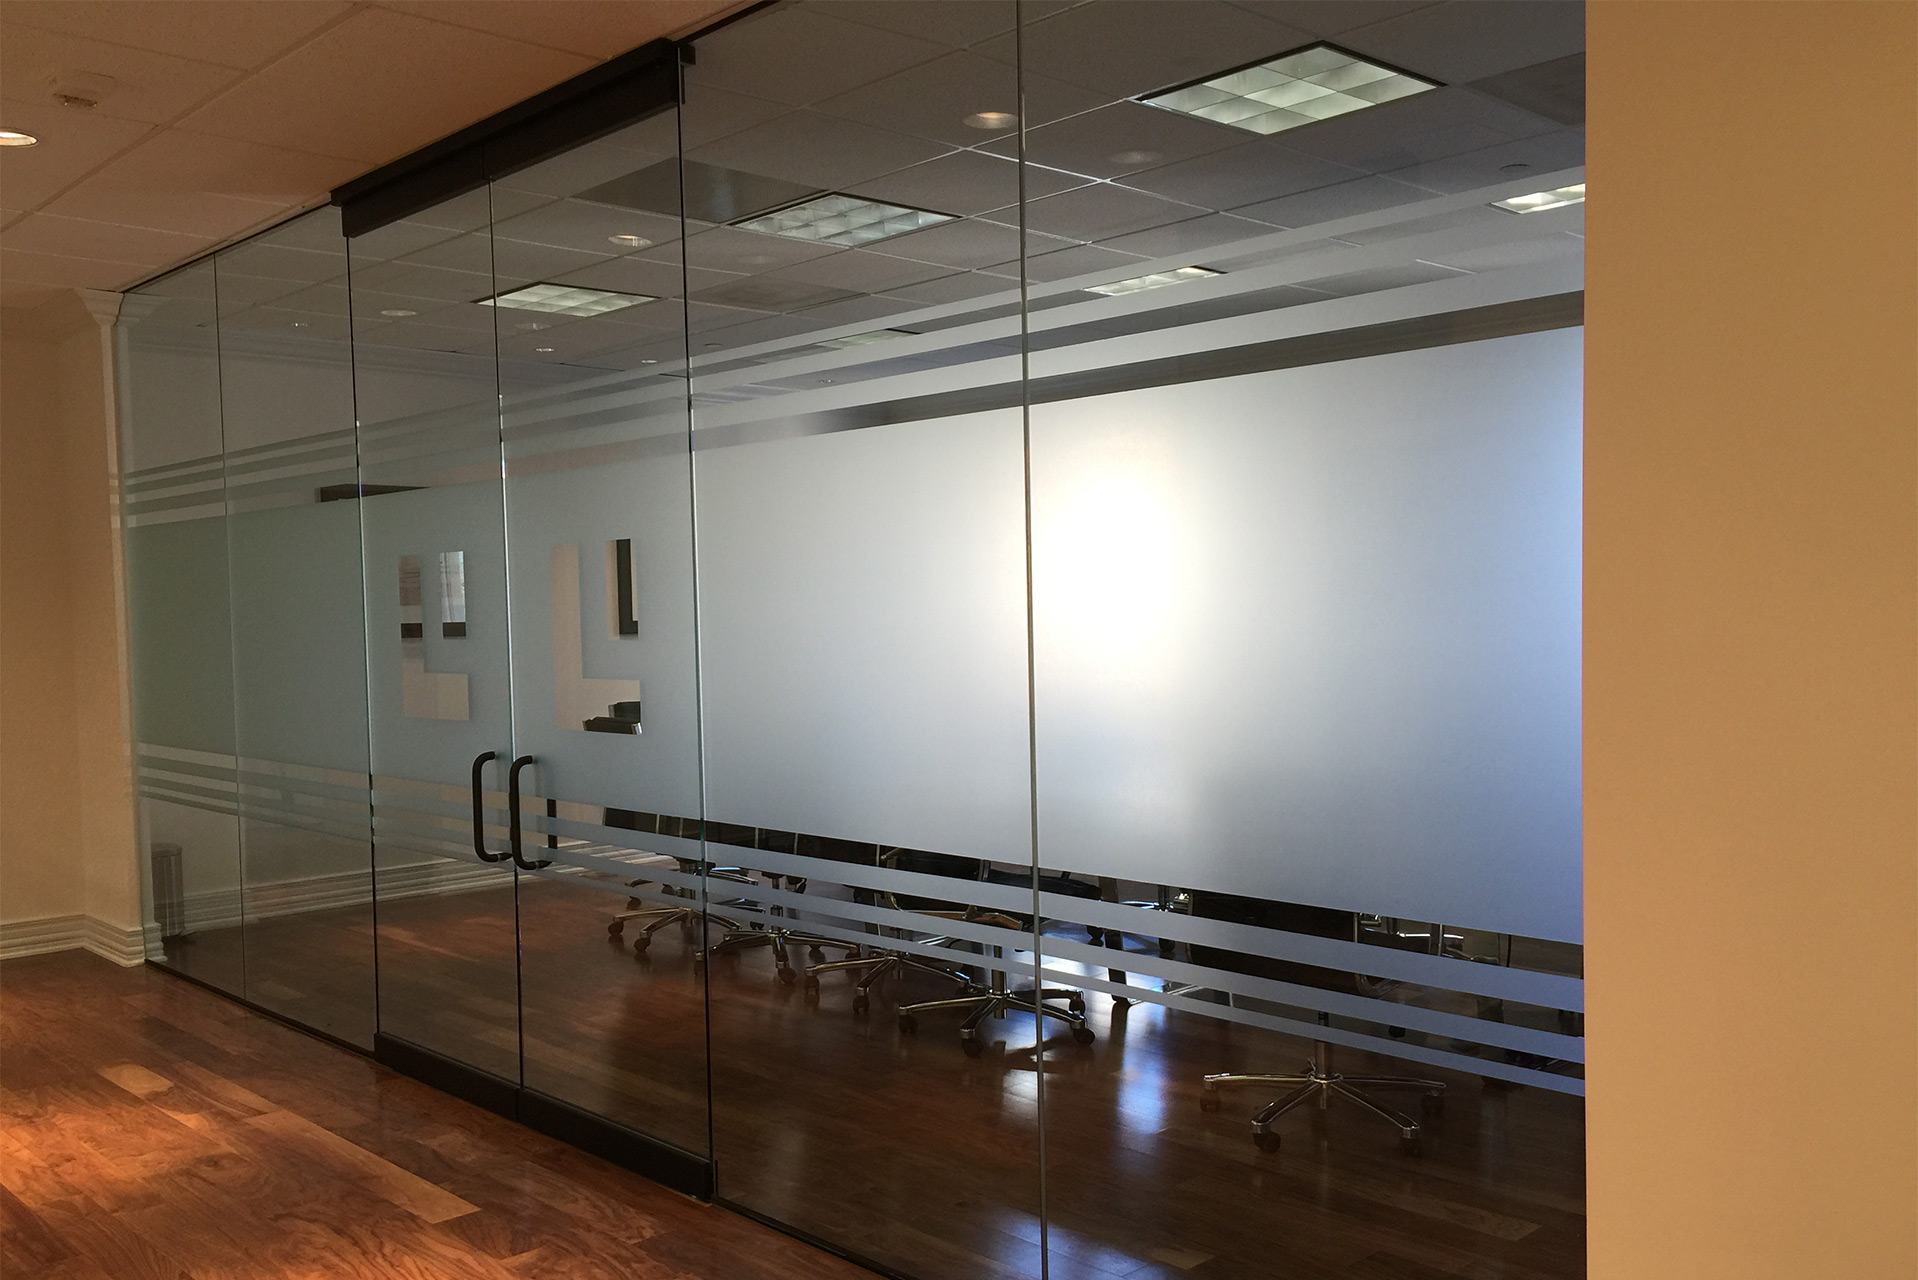 Etched window film with Branding